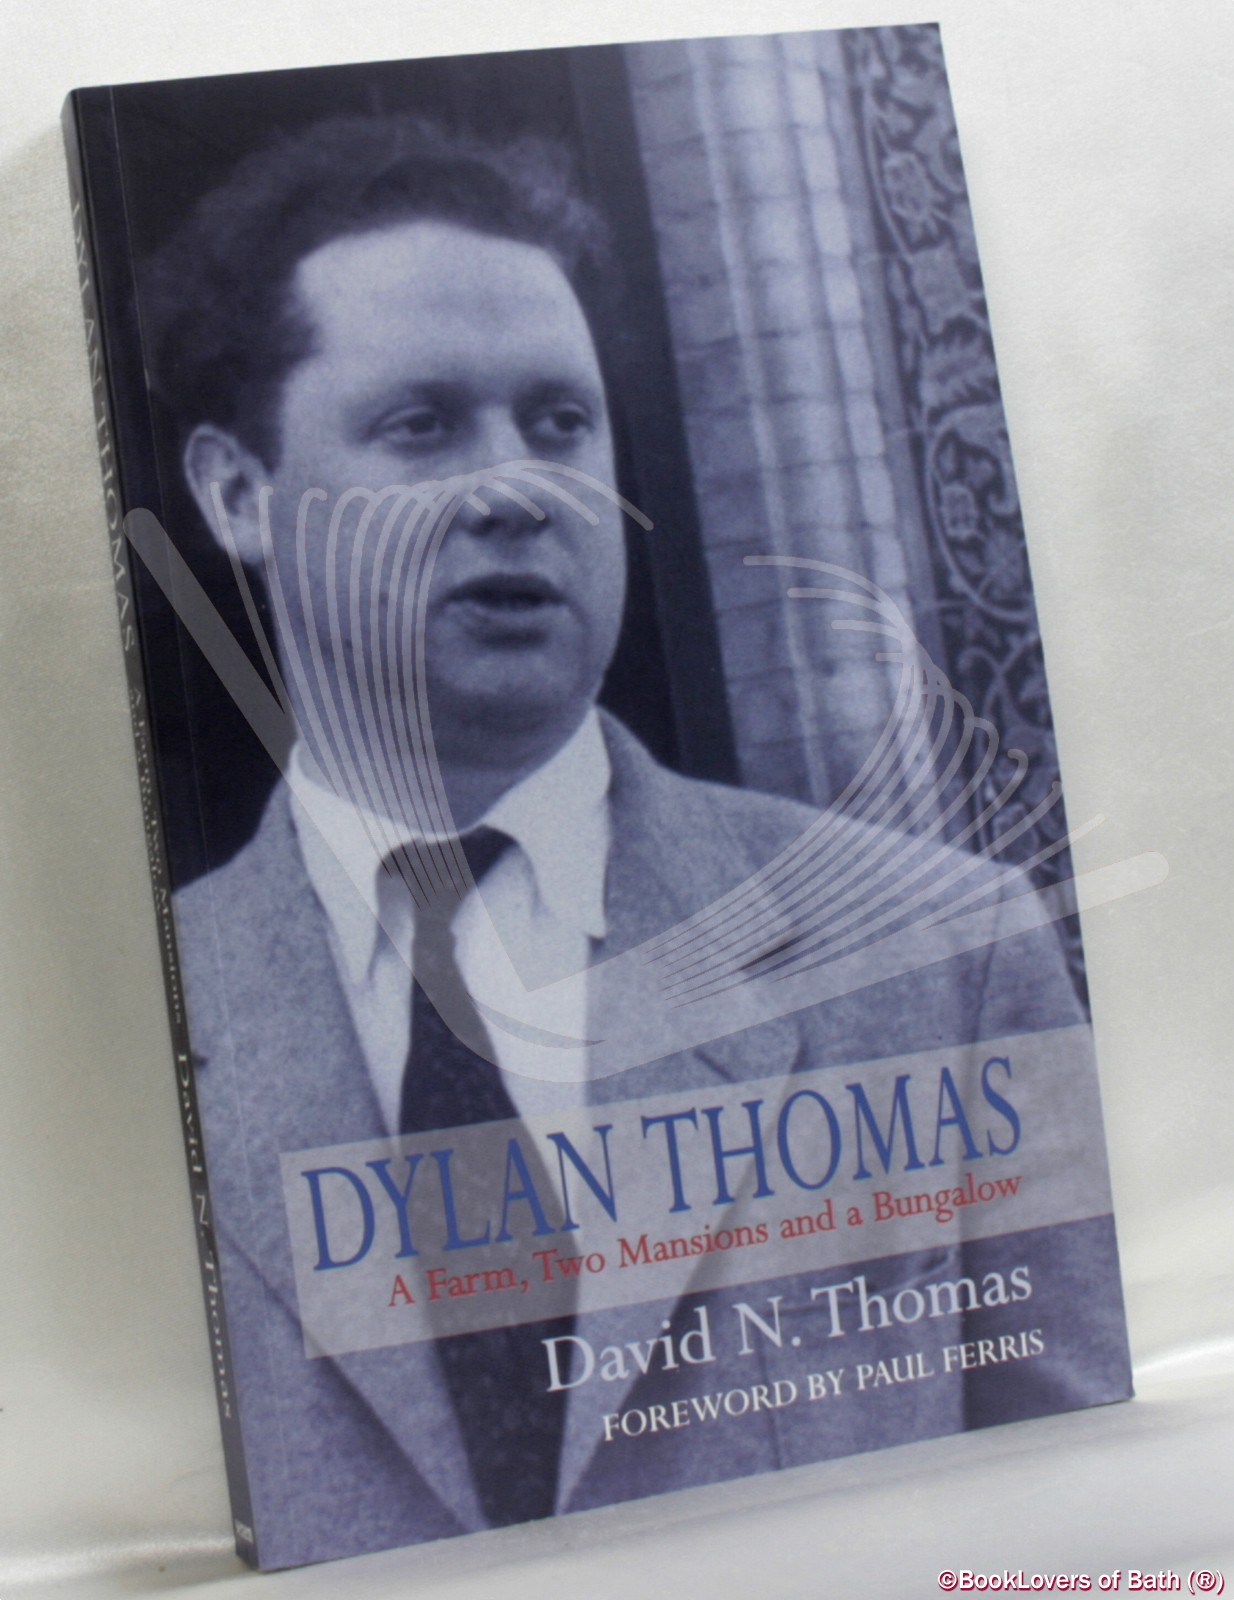 Dylan Thomas: A Farm, Two Mansions and a Bungalow - David N. Thomas